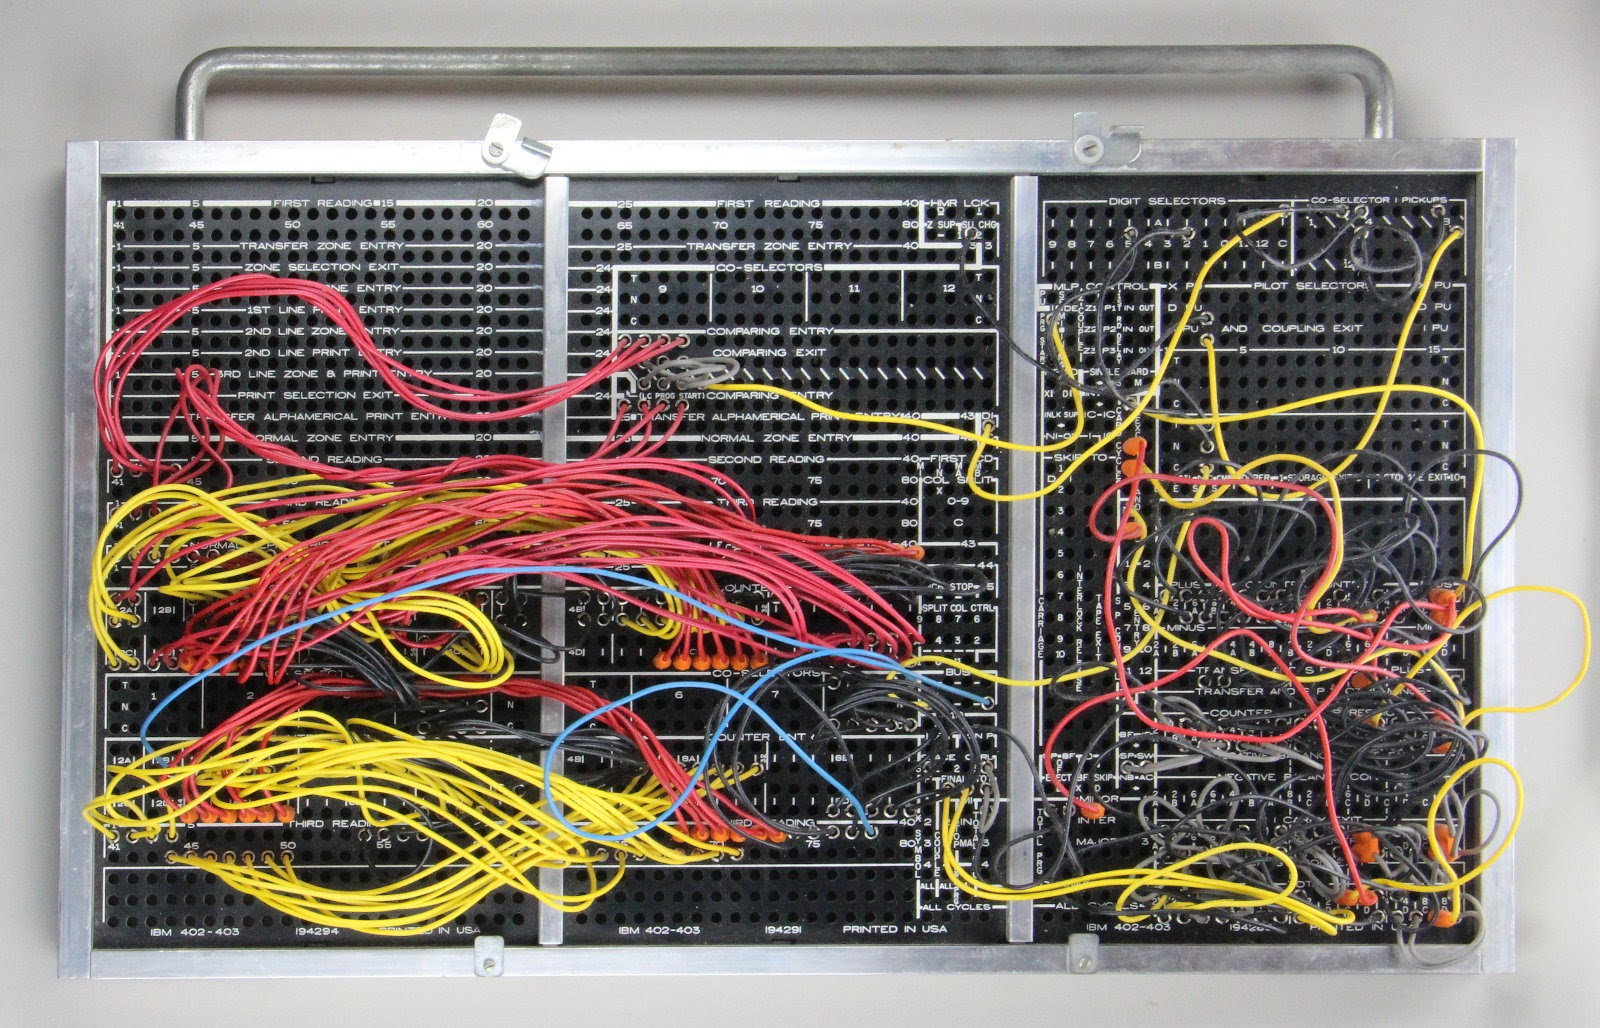 hight resolution of this plugboard for an ibm 403 implements tax deduction computation board courtesy of carl claunch